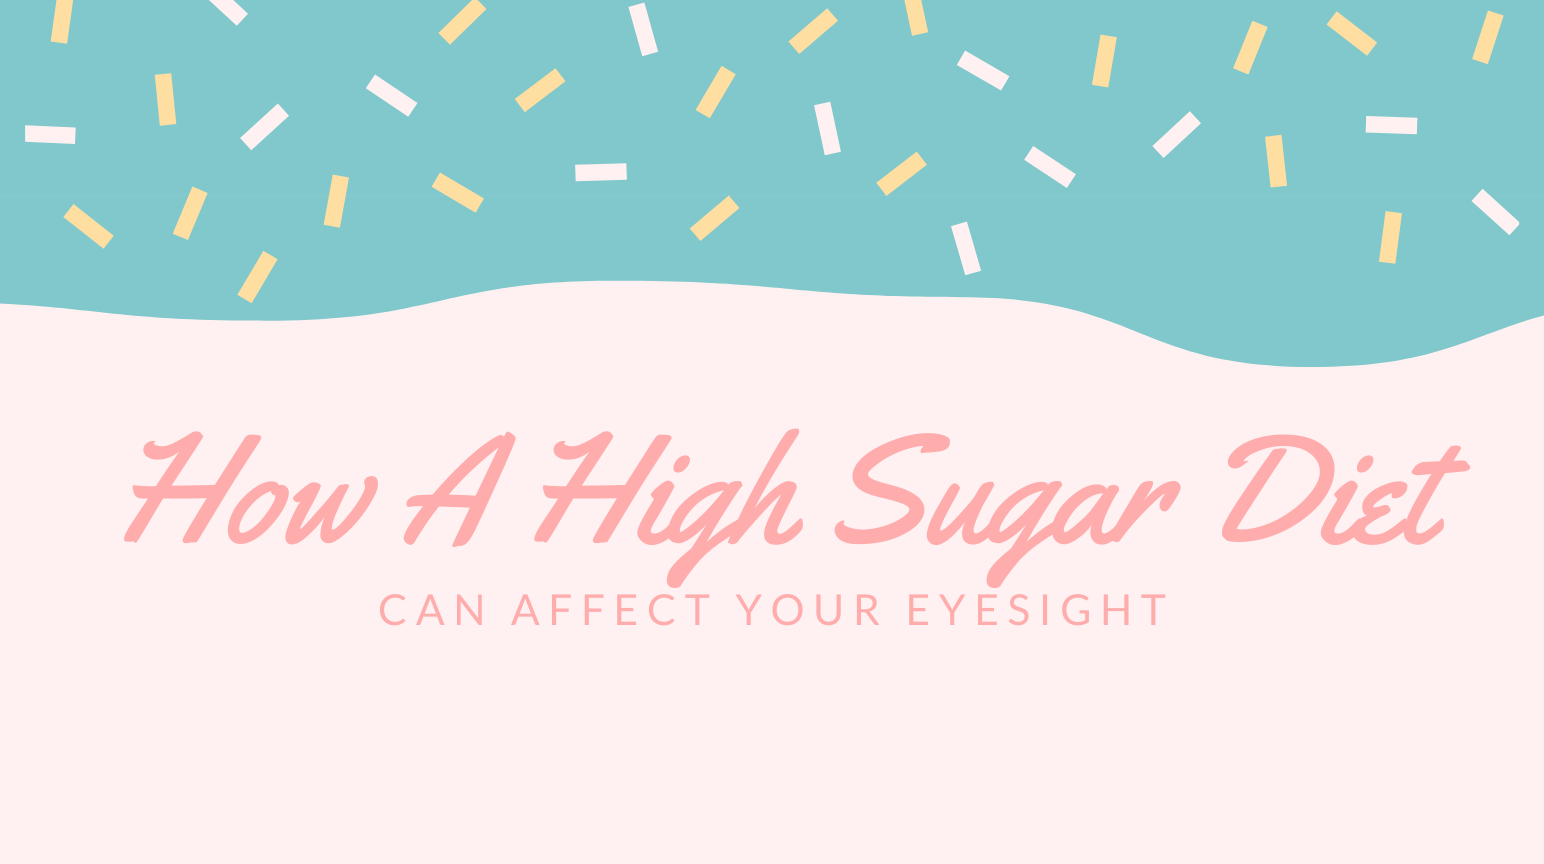 How A High Sugar Diet Can Affect Your Eyesight